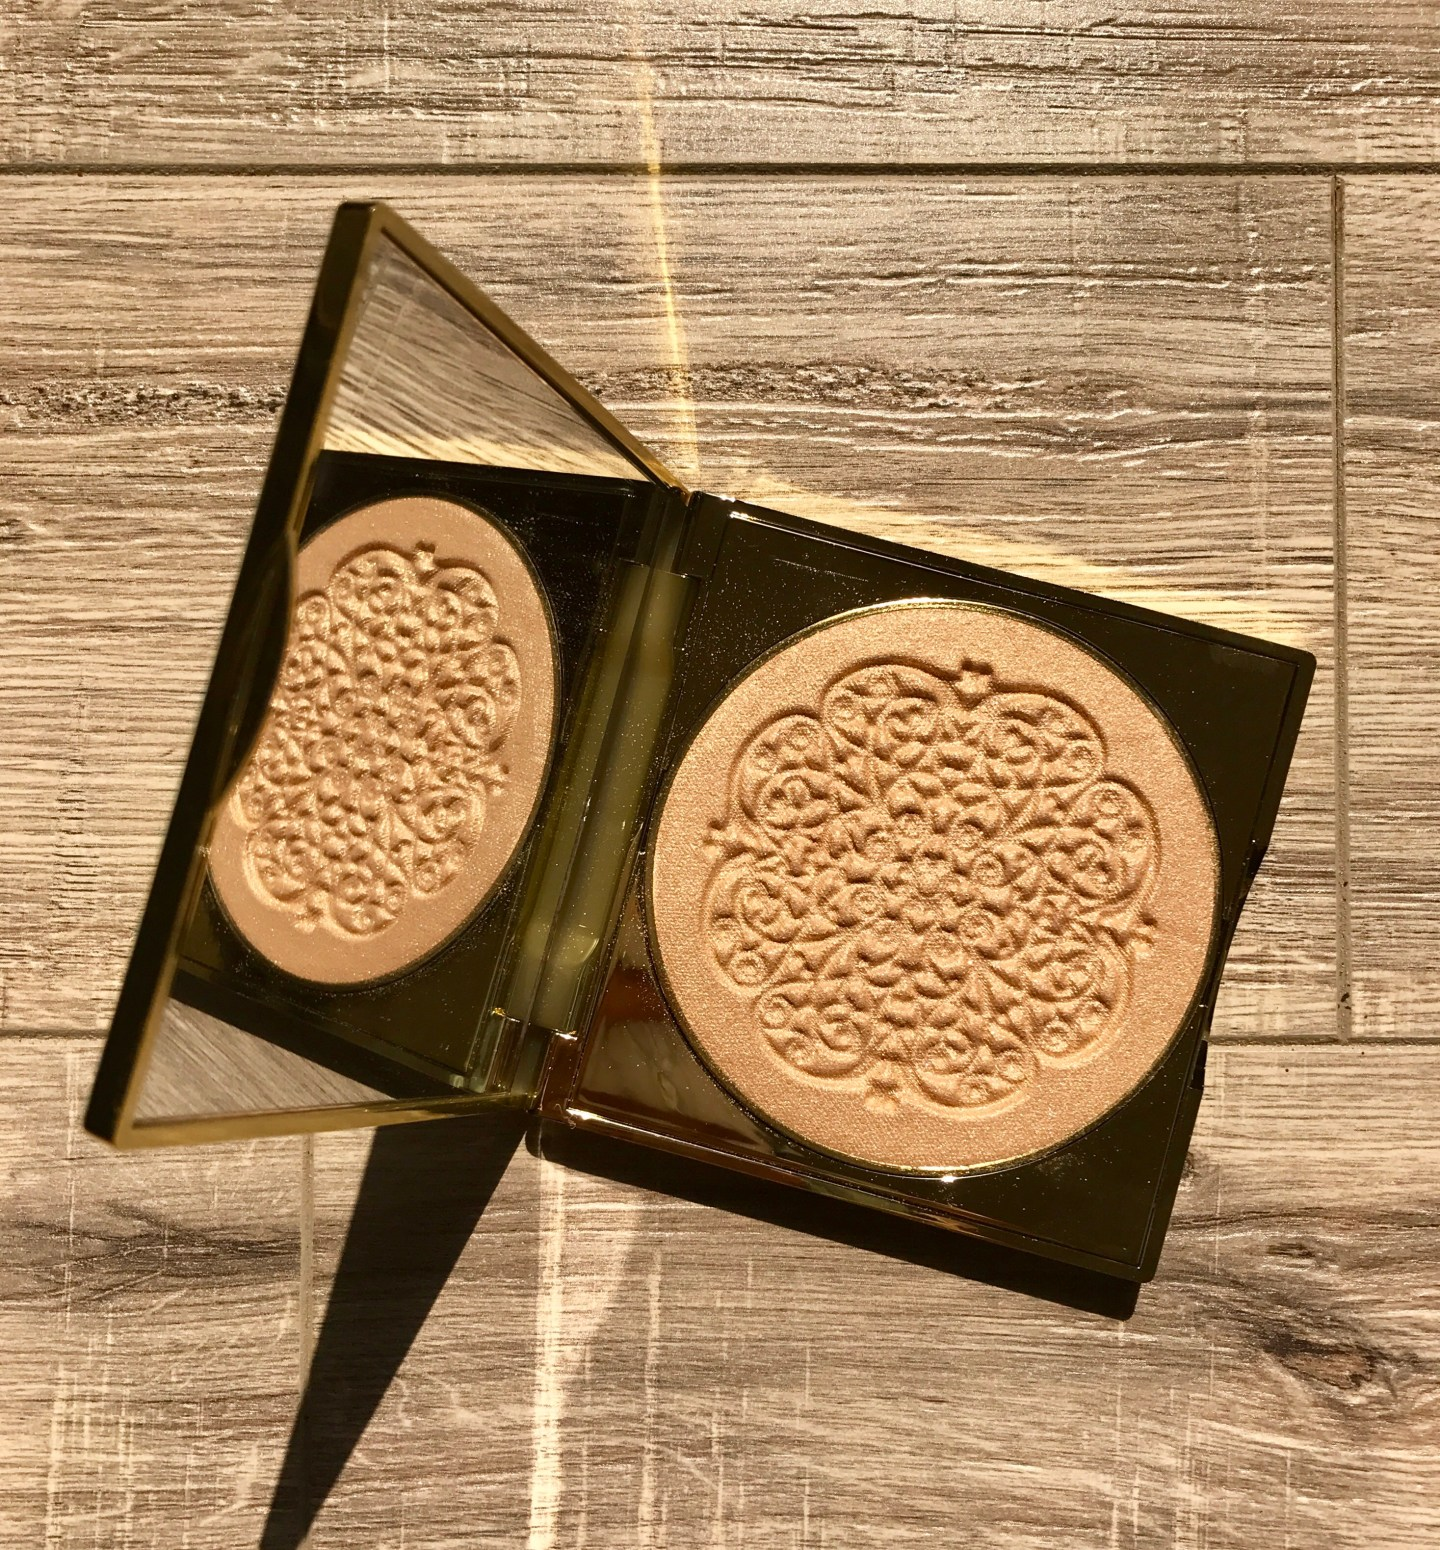 FIRST LOOK & SWATCHES: TARTE HOLIDAY 2017- GODDESS GLOW HIGHLIGHTER!